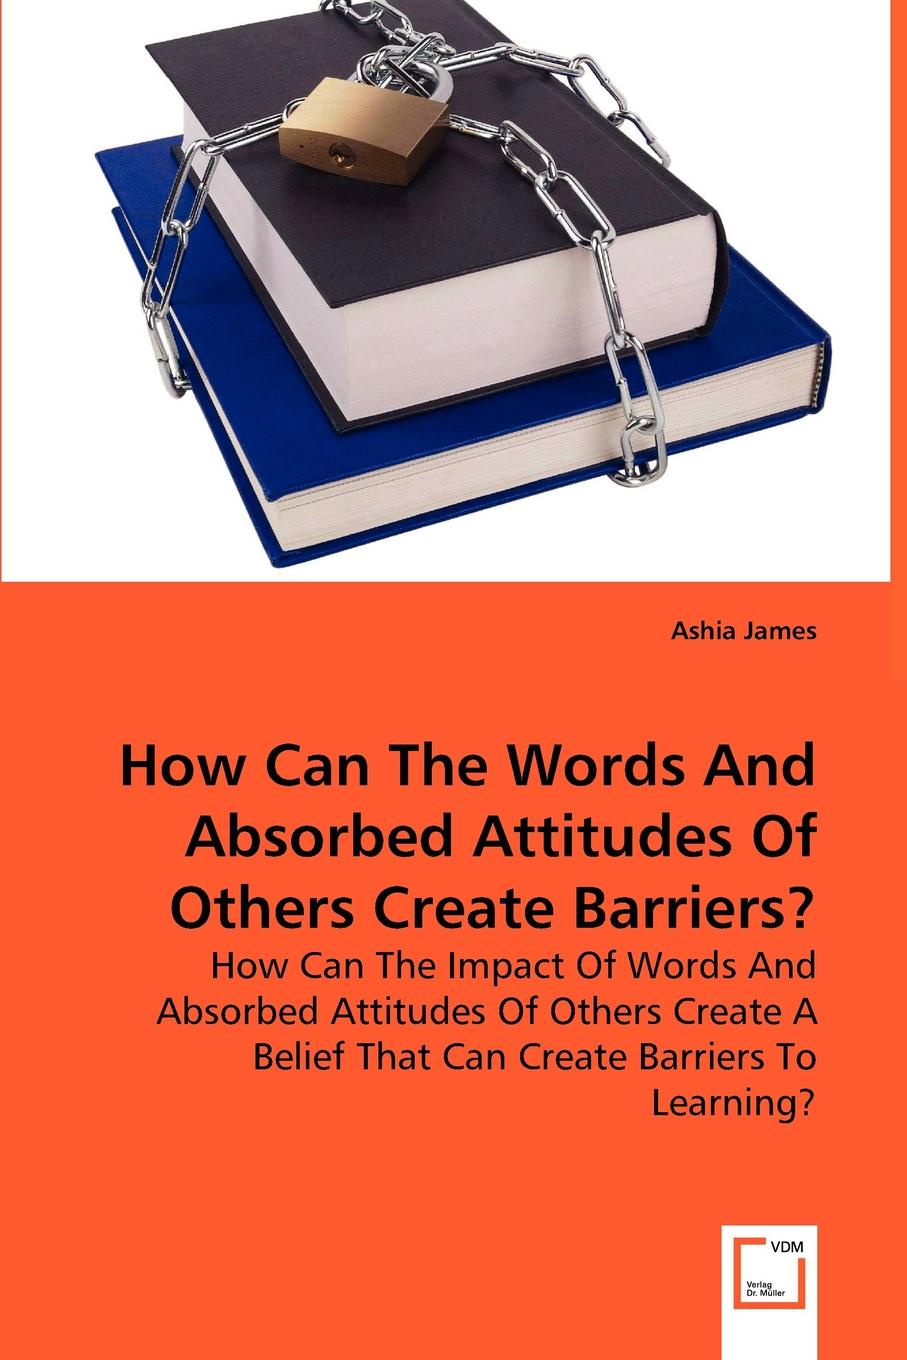 Ashia James How can the words and absorbed attitudes of others create barriers?